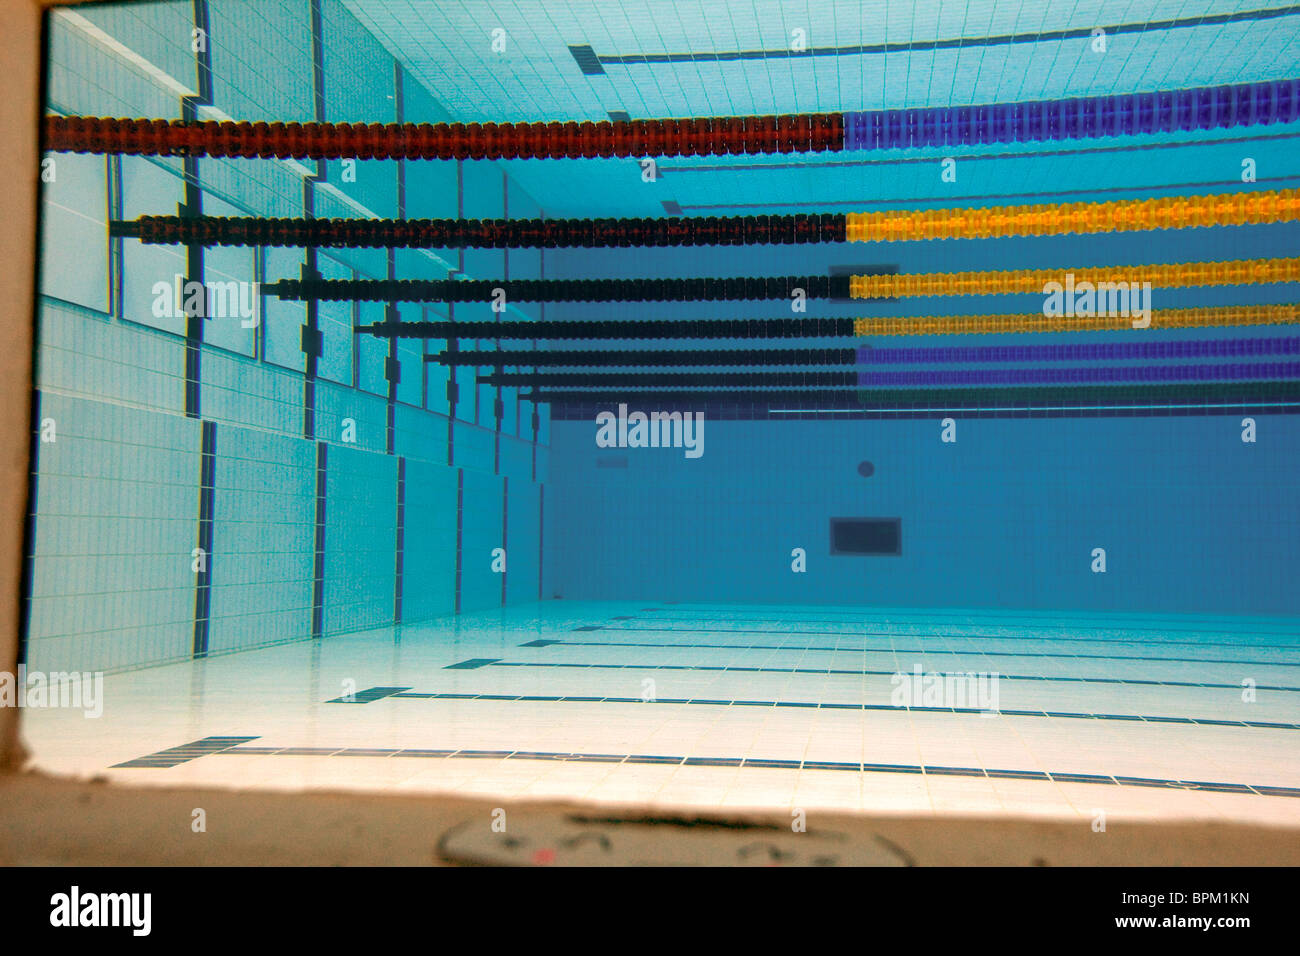 Underwater View Of The Empty Pool At Water Cube 2008 Olympic Venue In Beijing